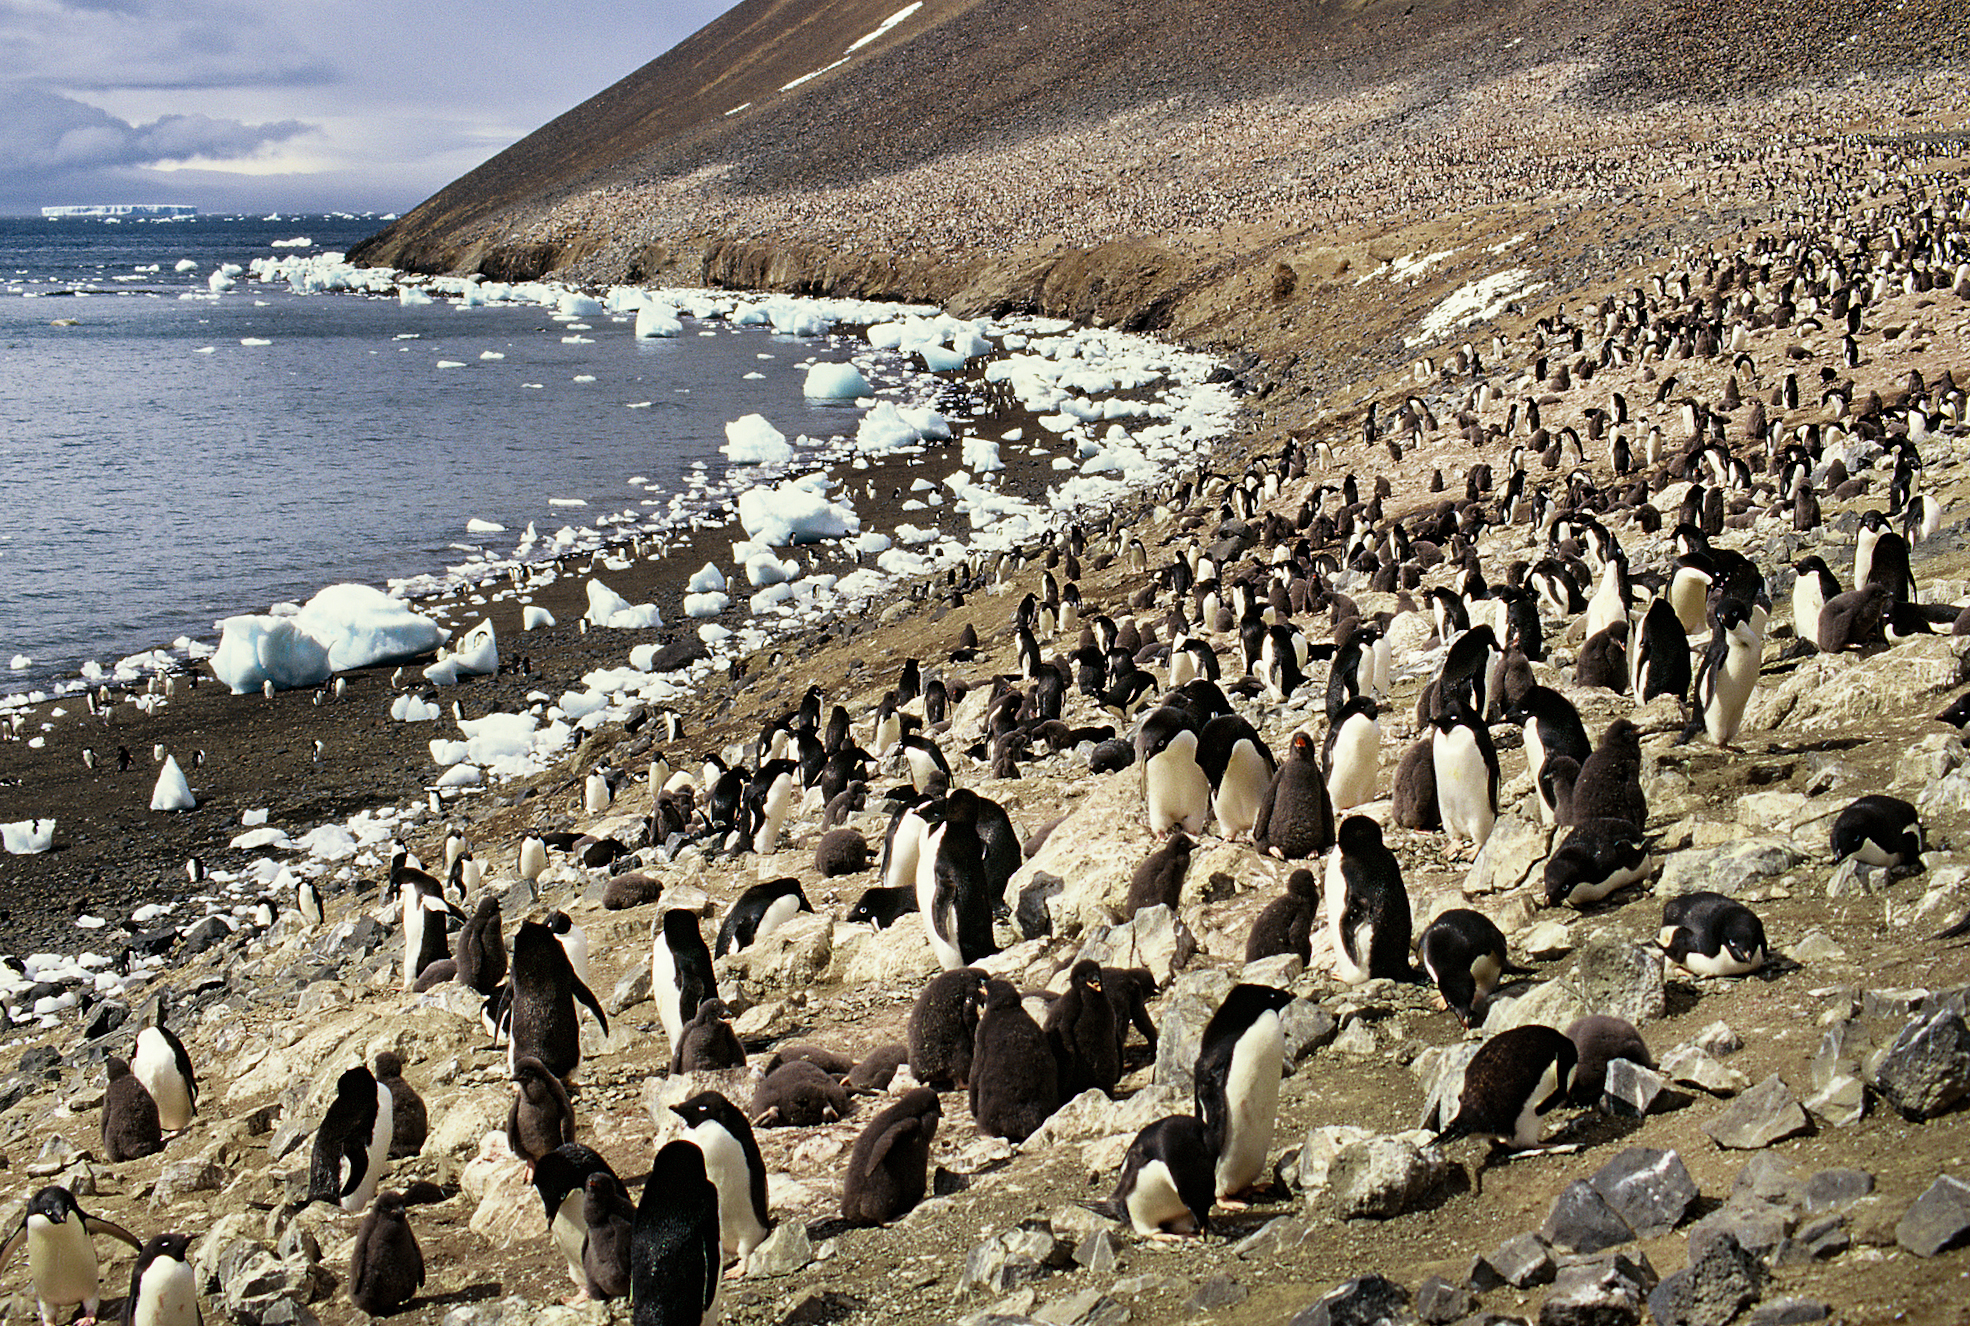 Adelie Penguin colony. Photo: Peter Prokosch